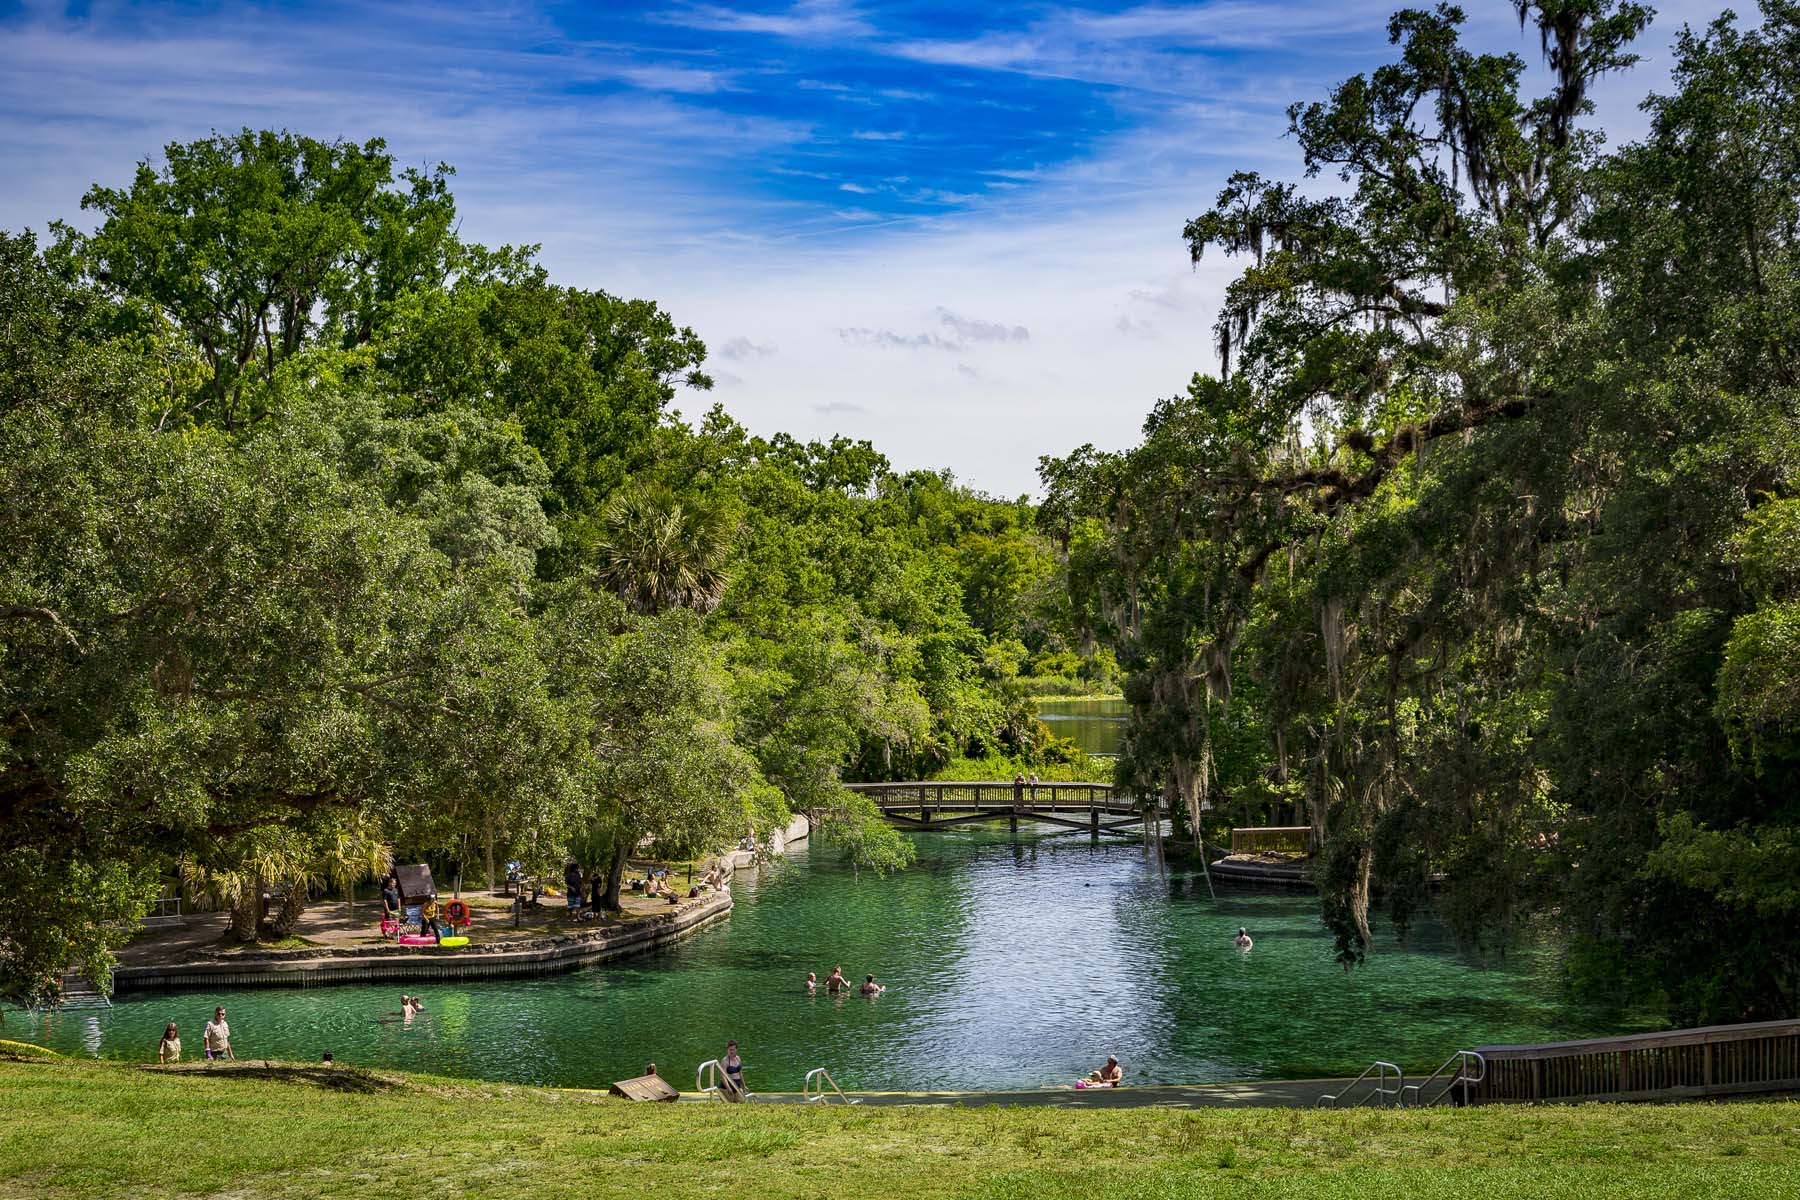 The Wekiva Springs